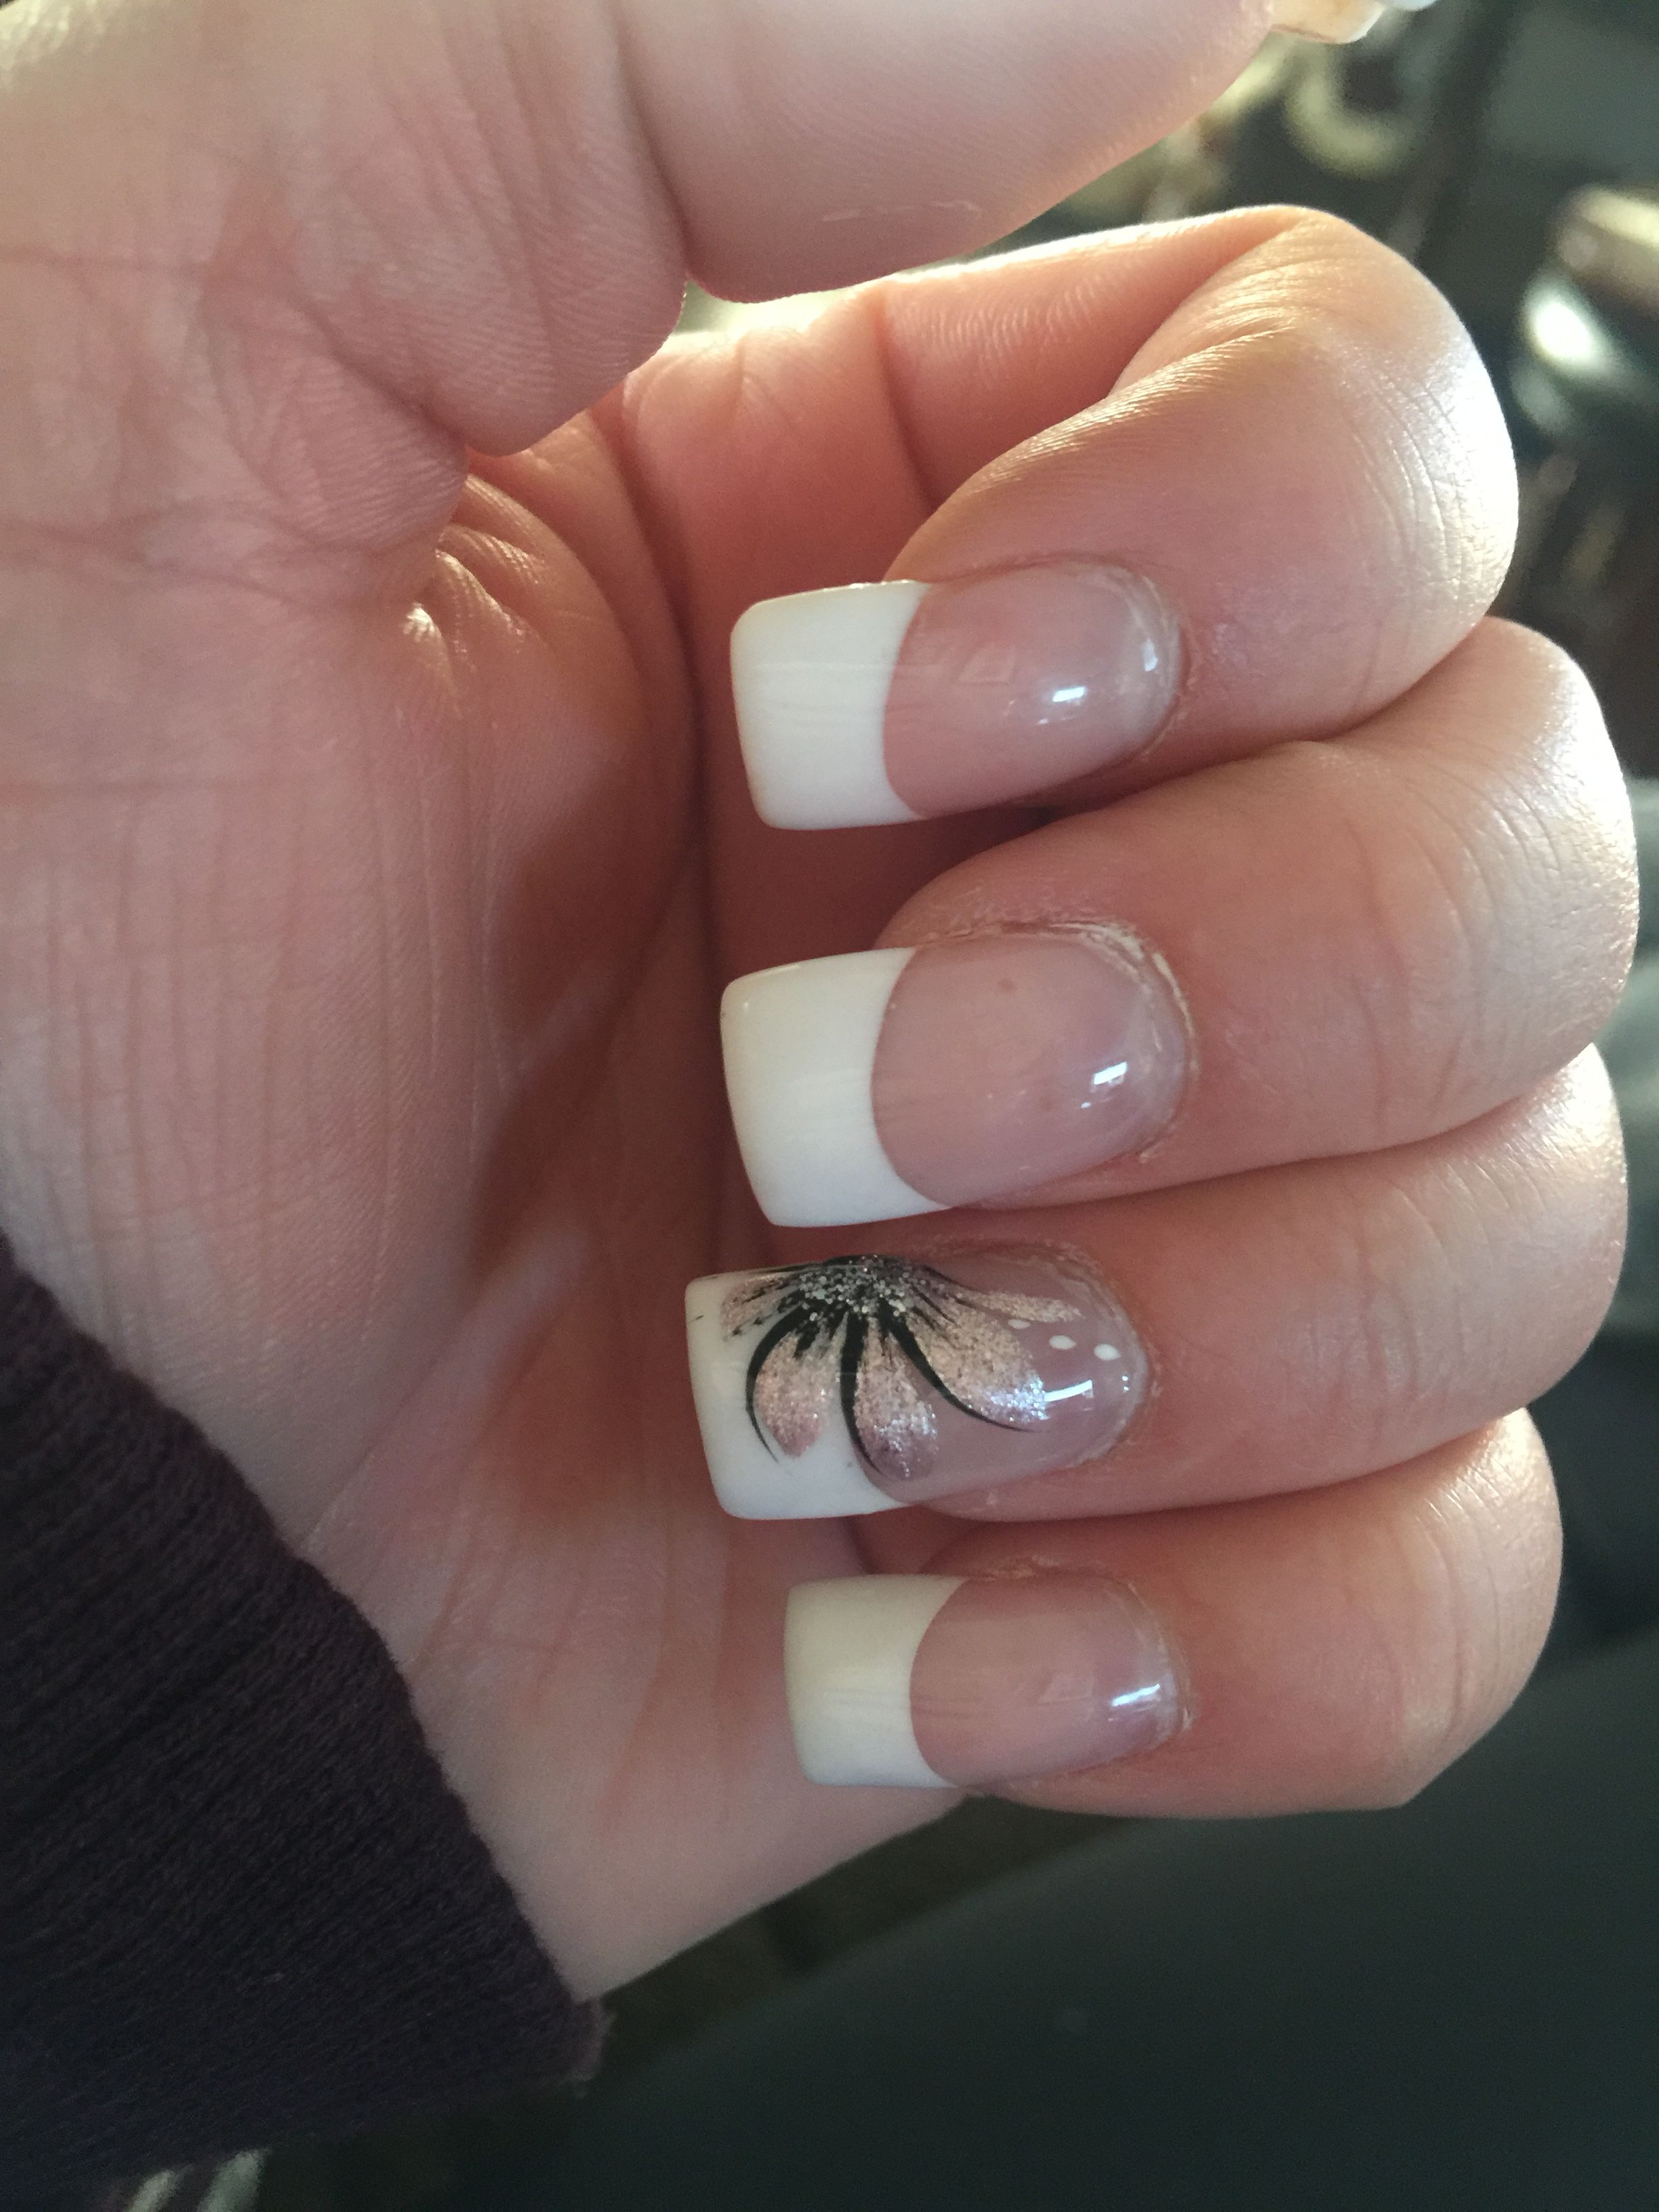 French Manicure Shallac Gel Nails With Flower Design on Ring Finger ...